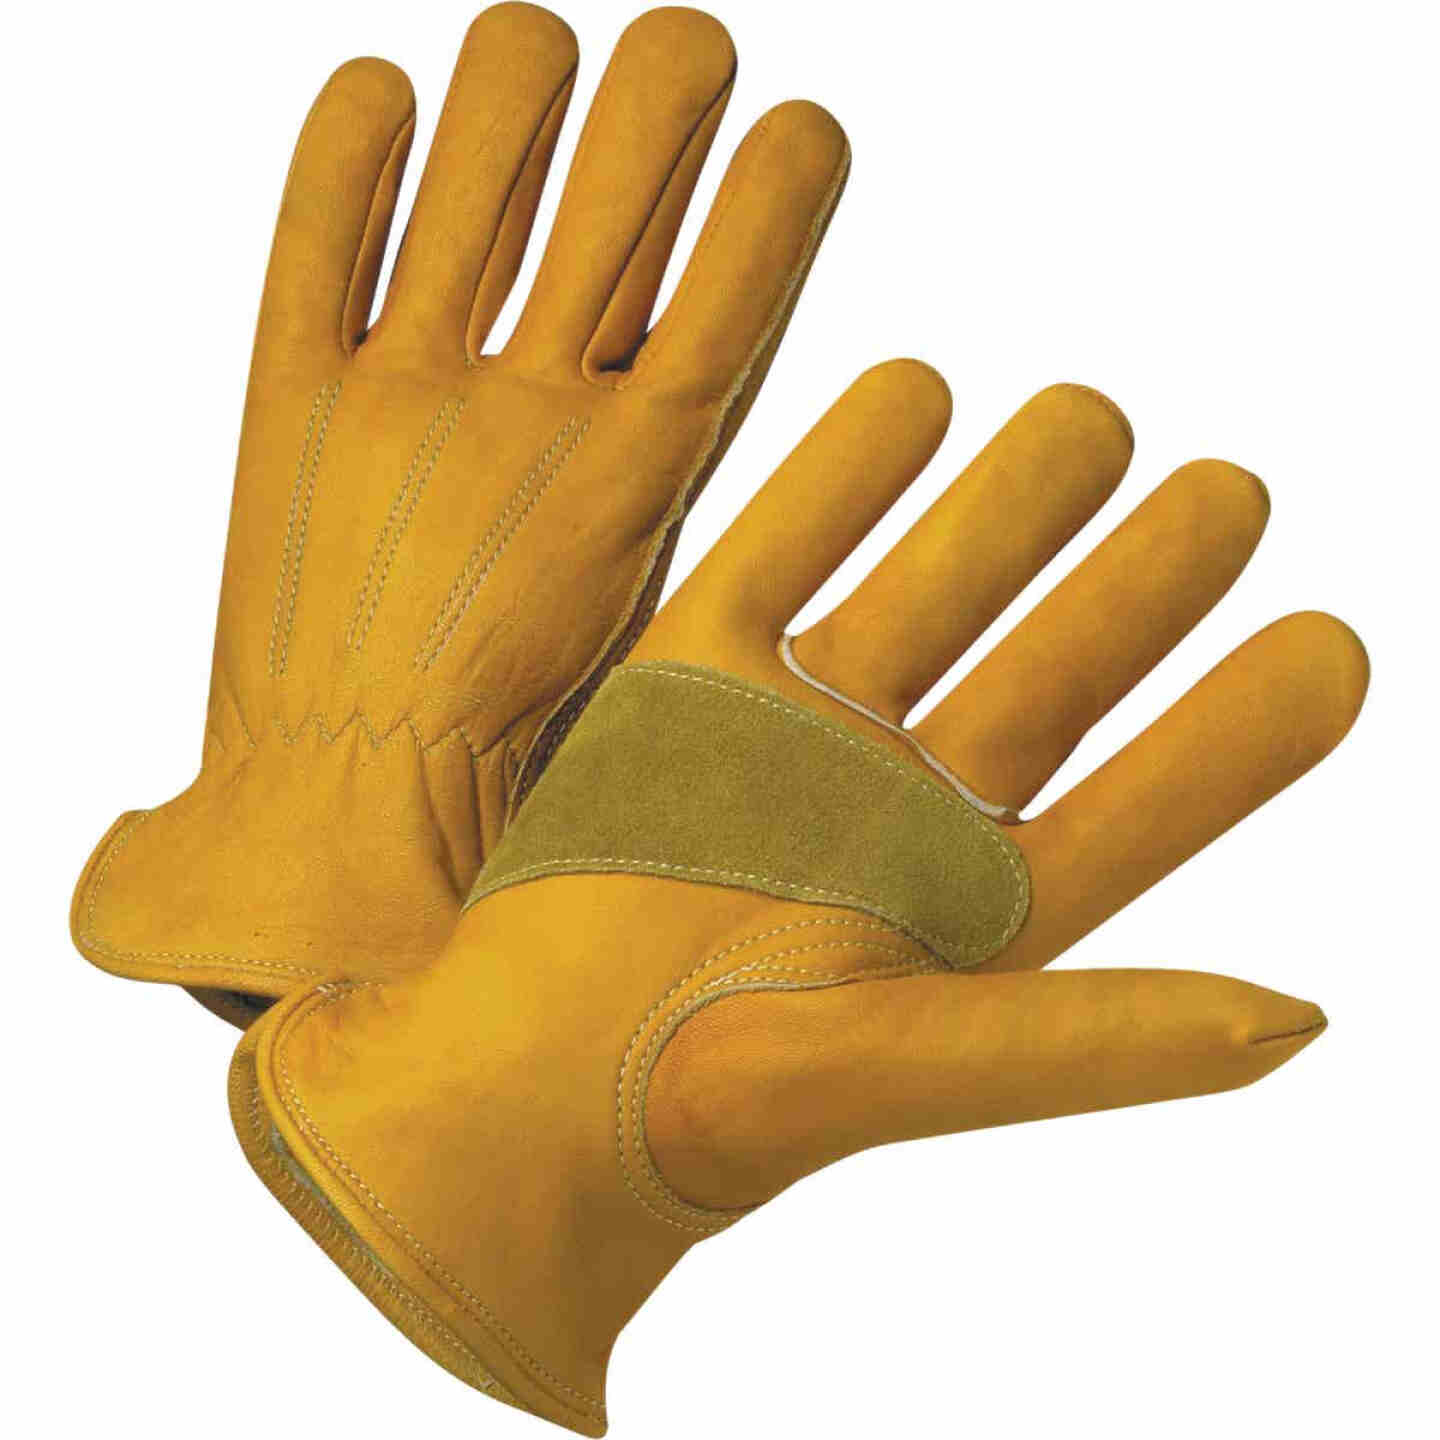 West Chester Protective Gear Men's Small Grain Cowhide Leather Work Glove Image 1